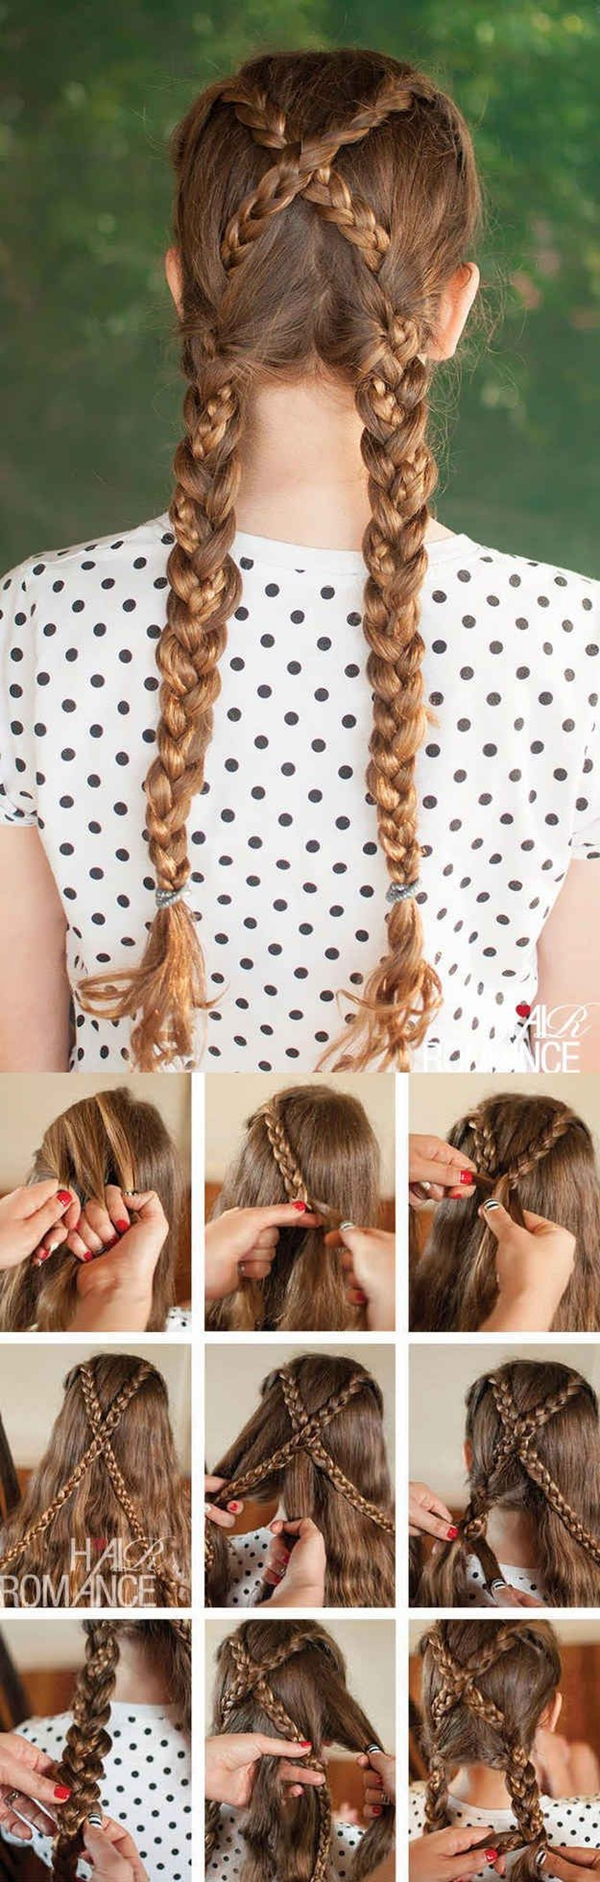 Simple and Sexy Hairstyle for Teen Girls -37